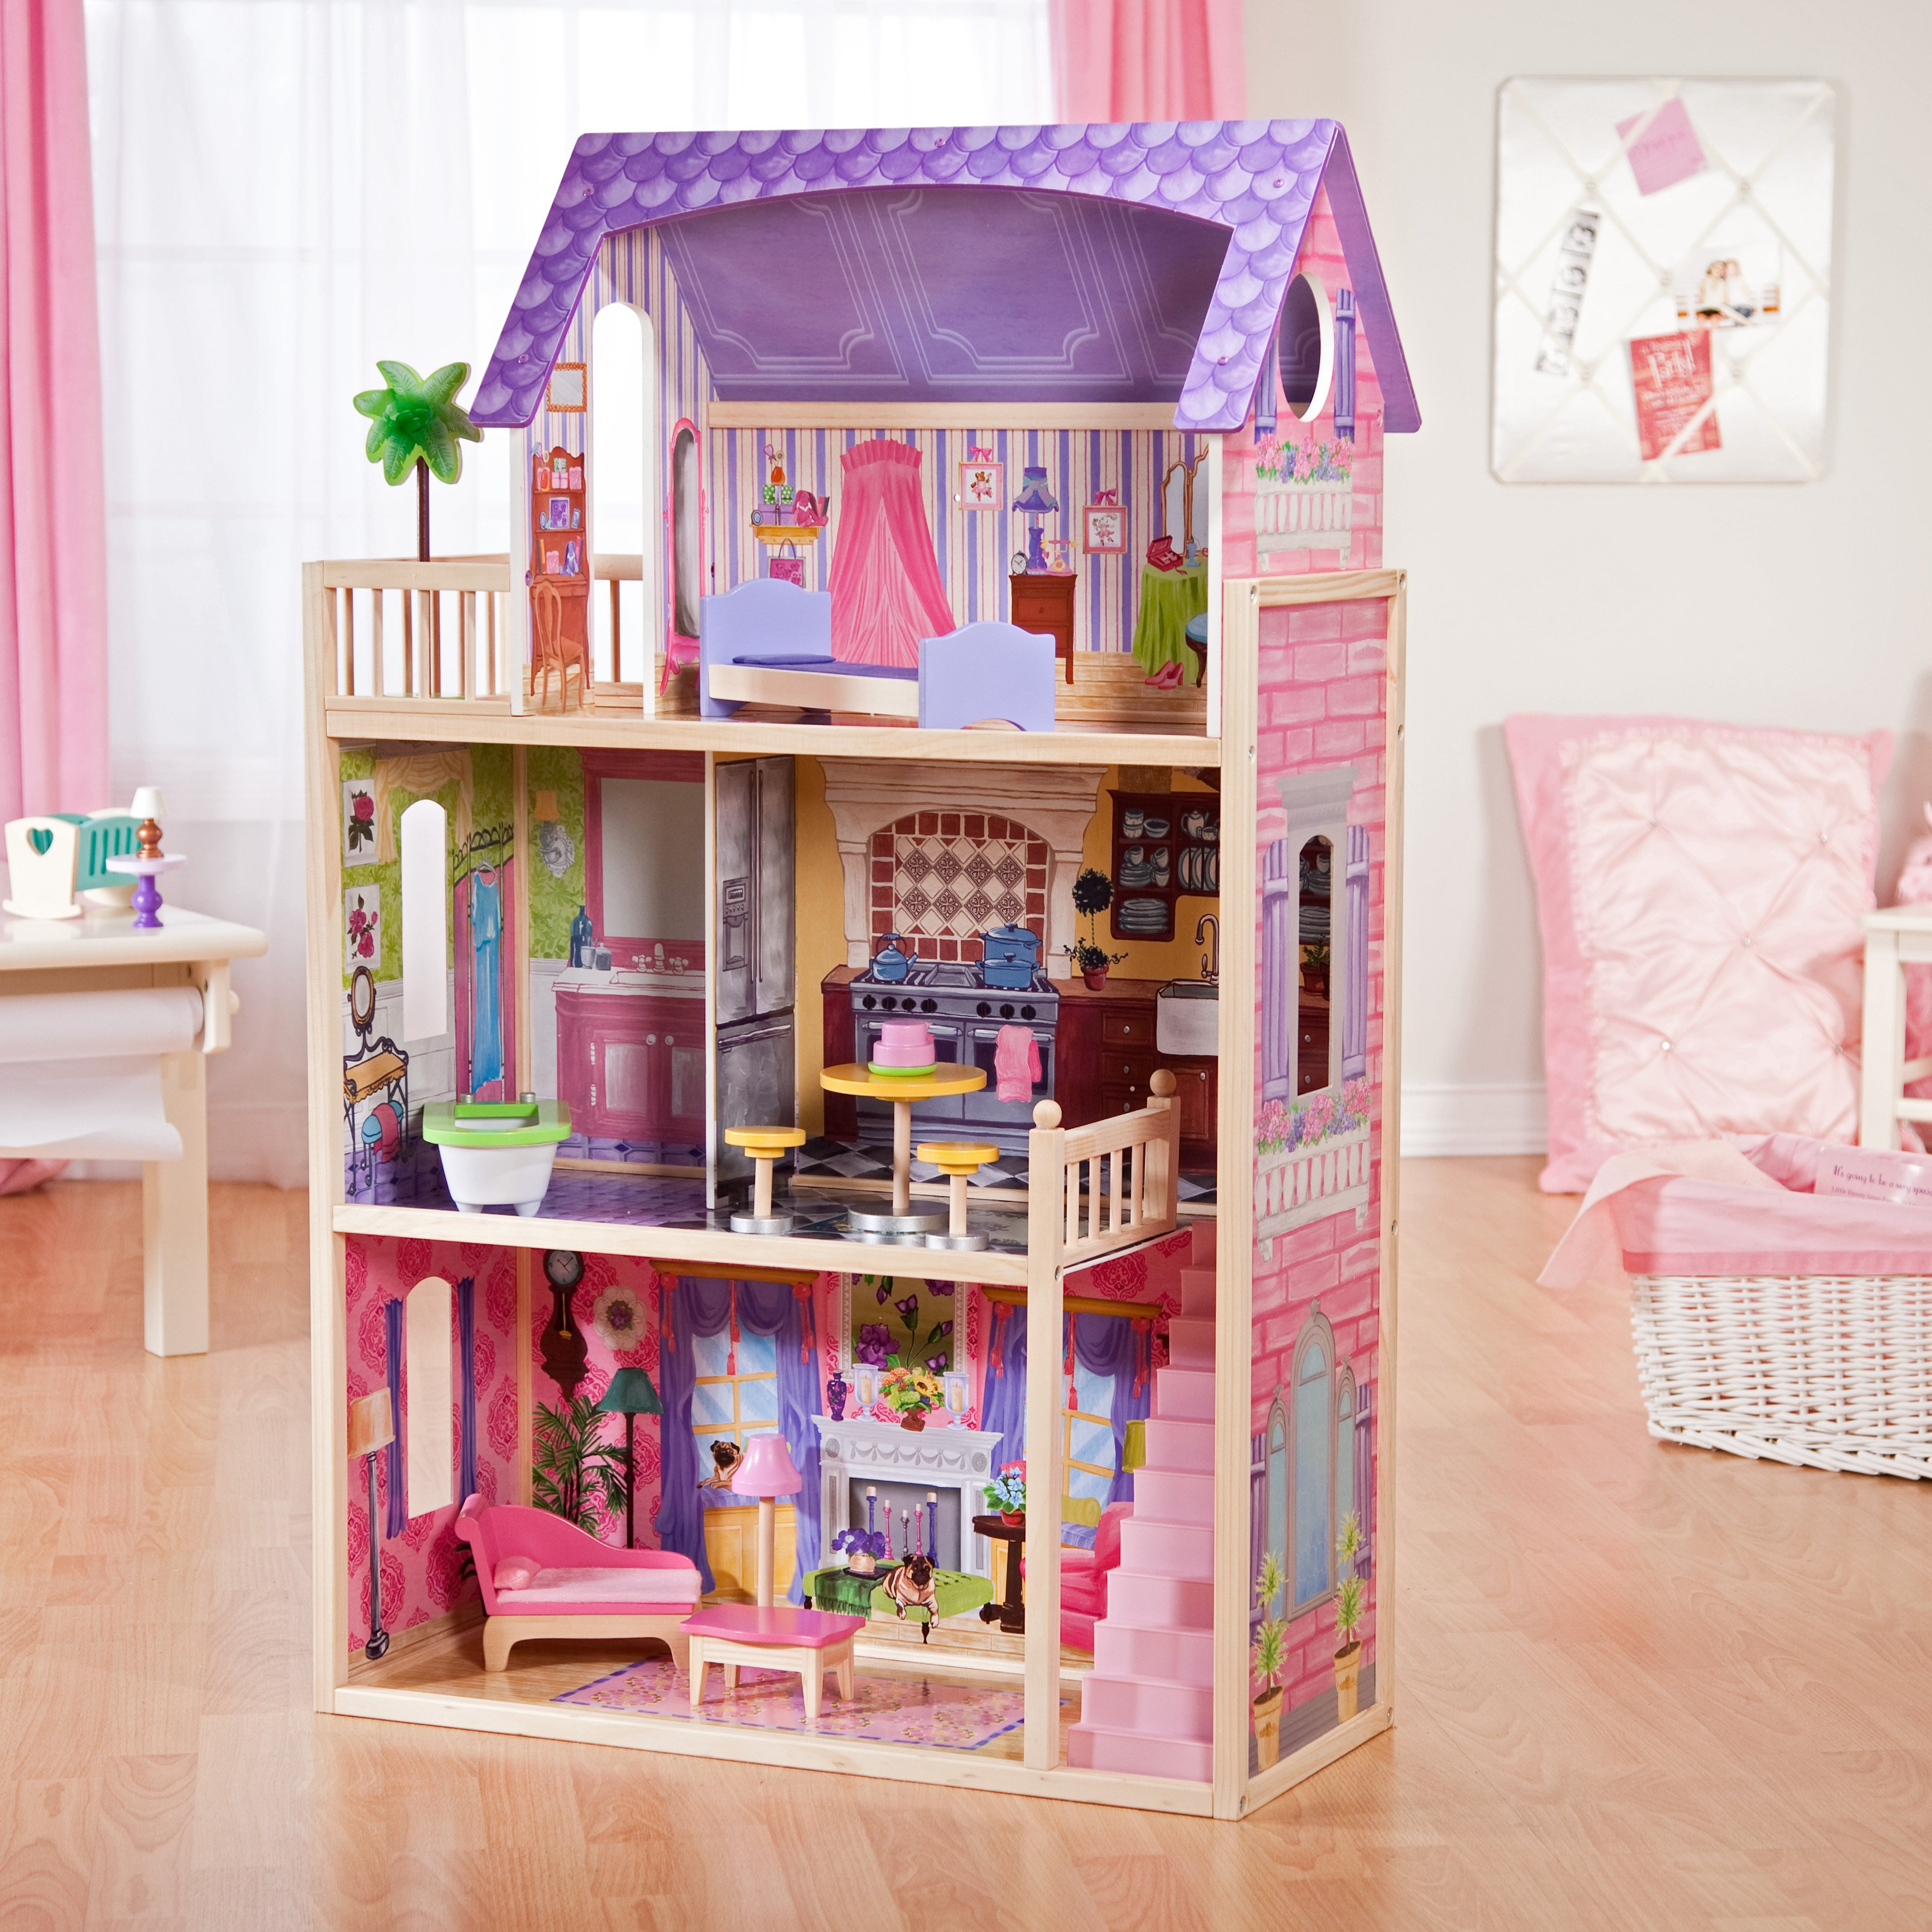 fantastic kidkraft dollhouse made of wood in pink and purple theme on wooden floor which matched with white wall with pink curtain for lovely nursery decor ideas